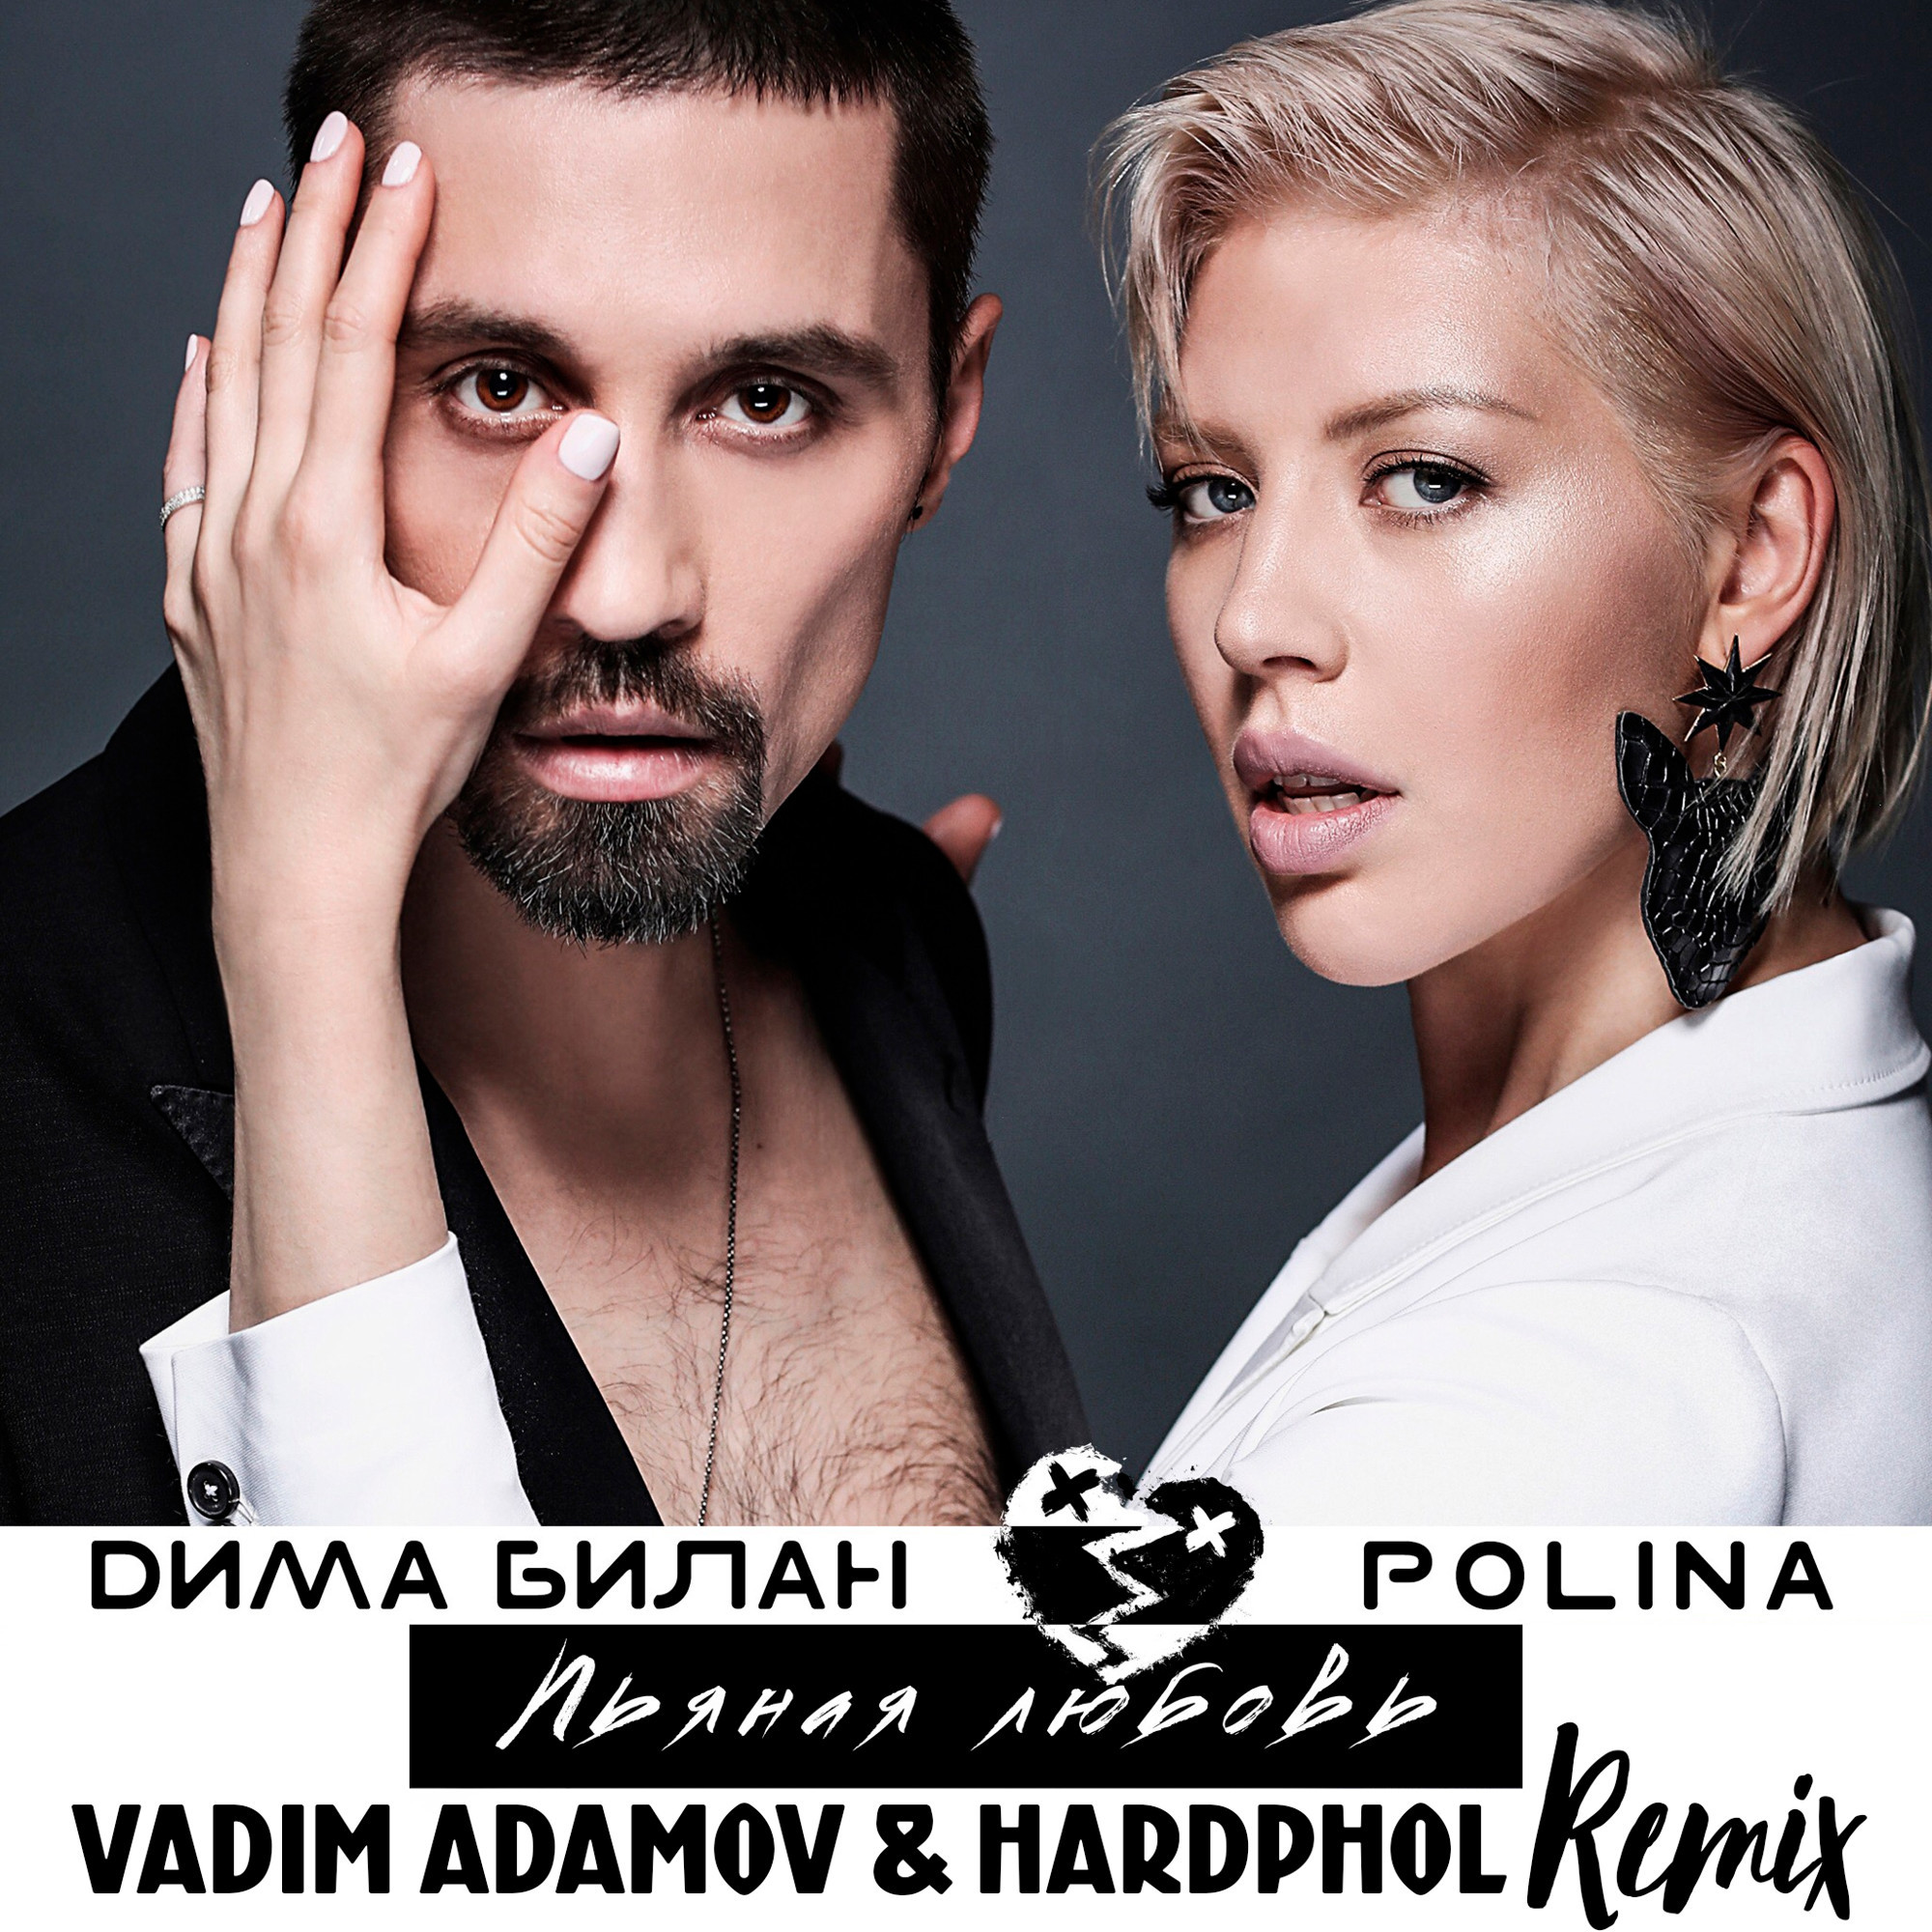 Donwload Mp3 Taki Taki Rumba: Пьяная Любовь (Vadim Adamov